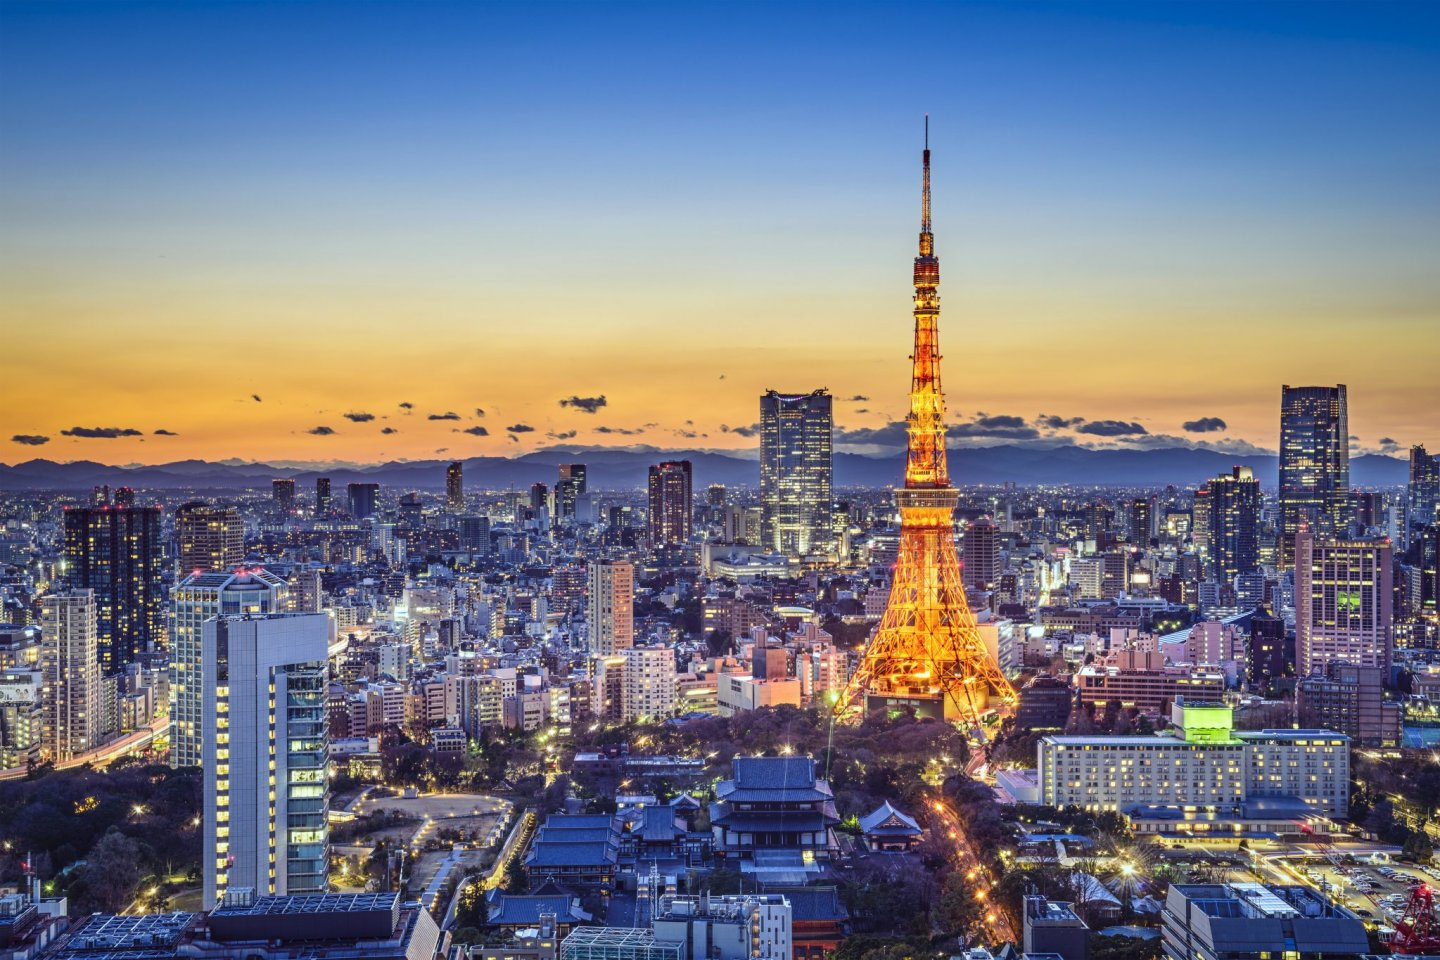 Tokyo Tower and skyline, Tokyo